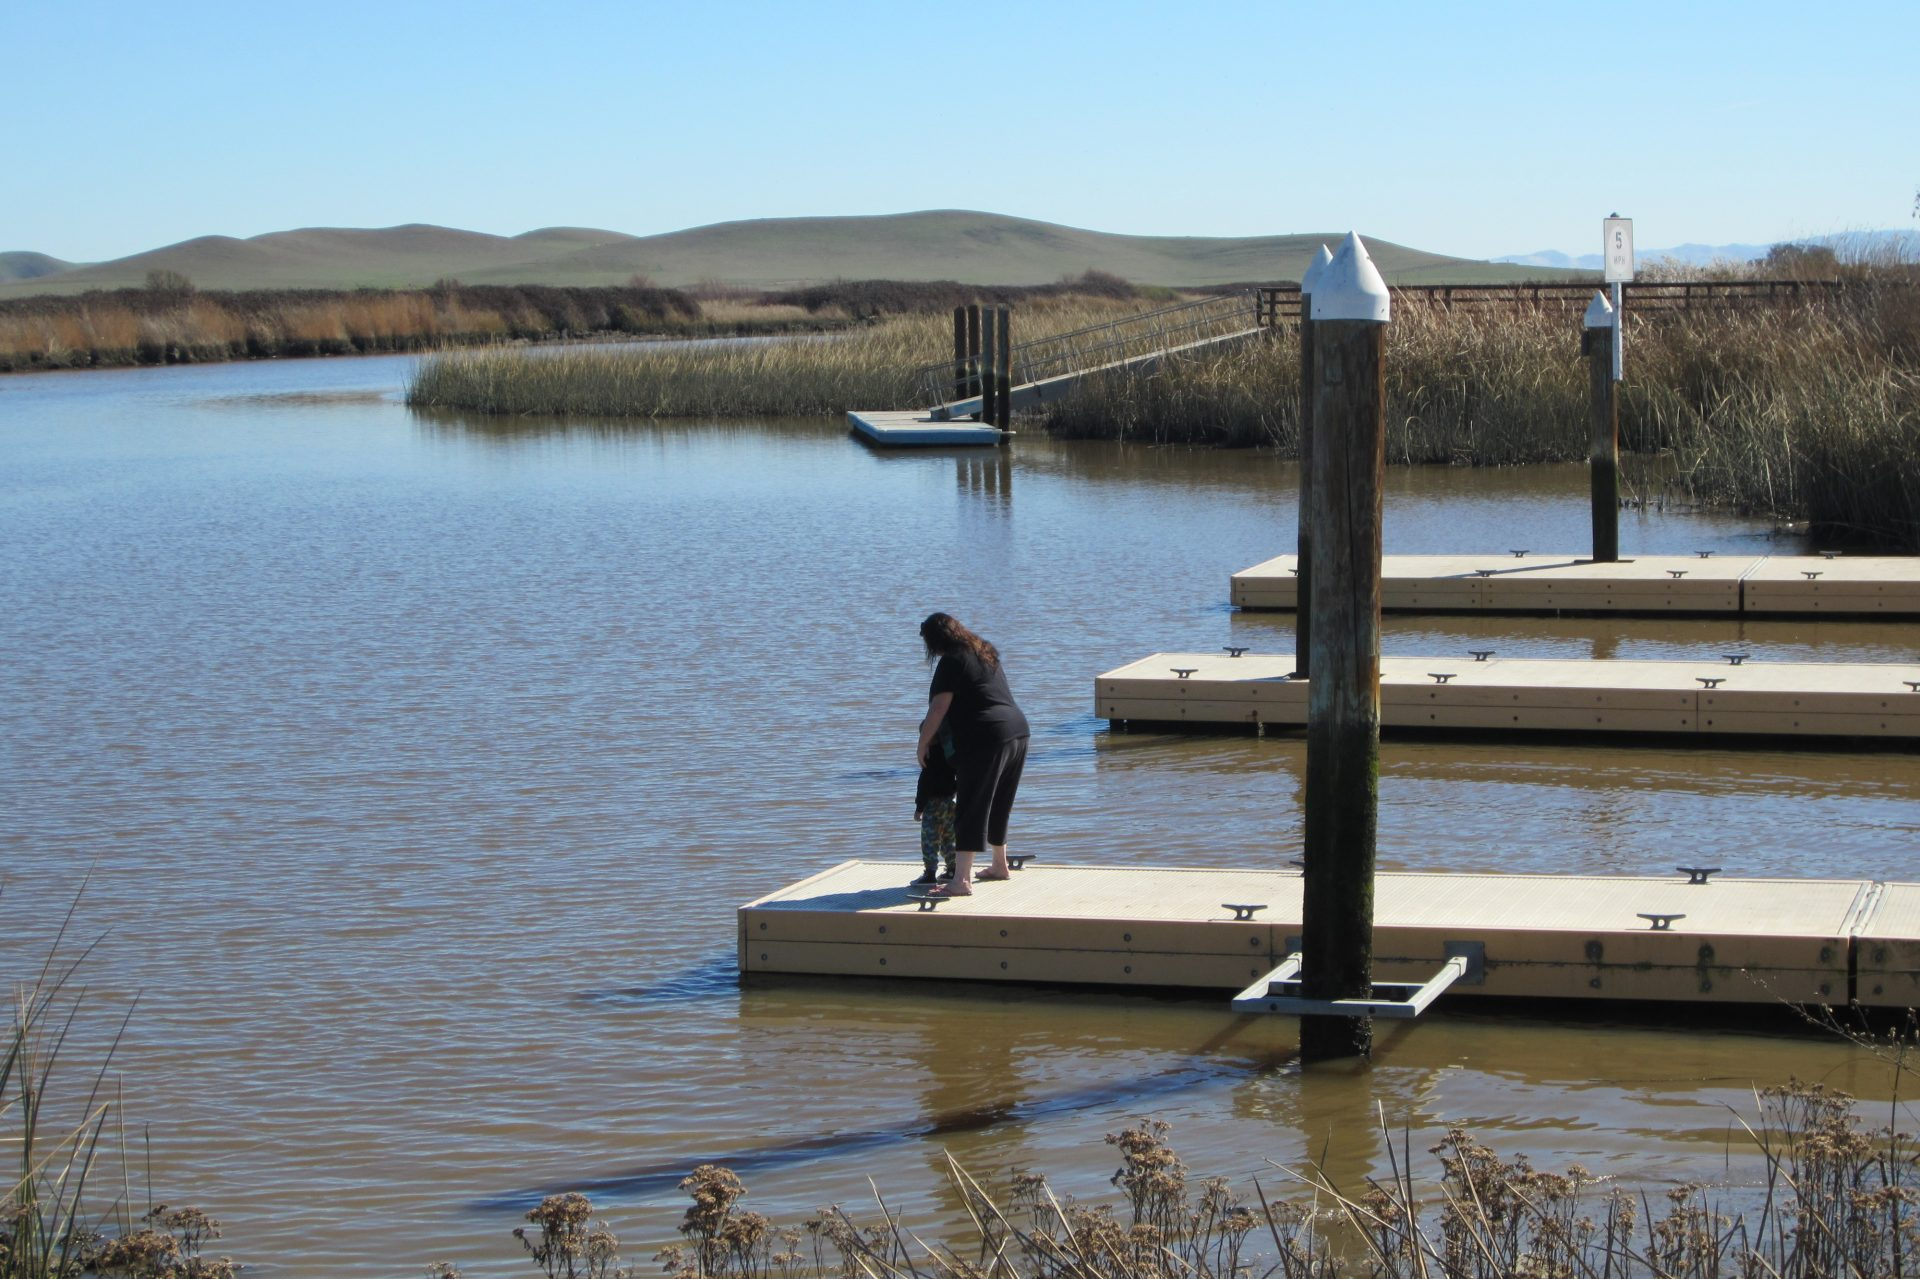 Woman and child on floating dock, with marsh grasses in distance